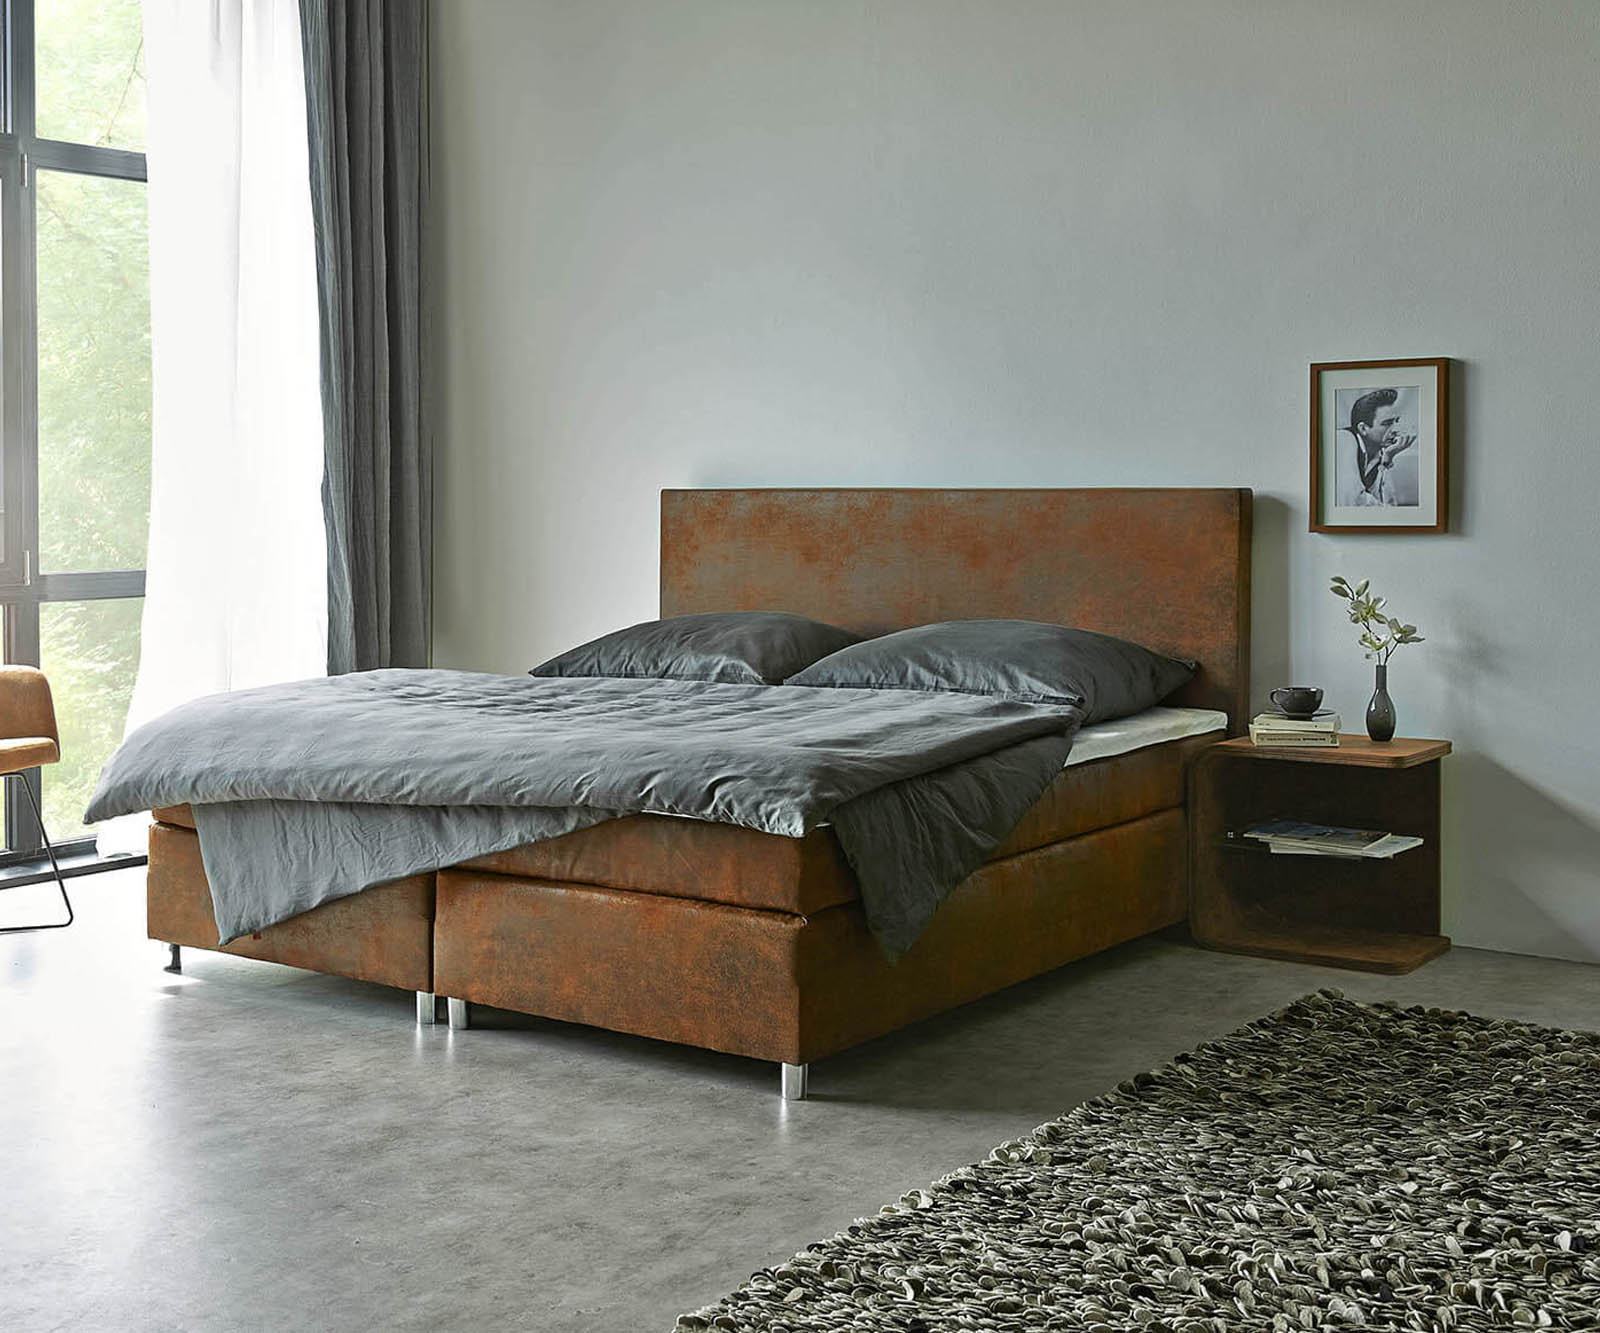 Boxspringbett Cloud 180x200 cm Braun Topper und Matratze Microvelours